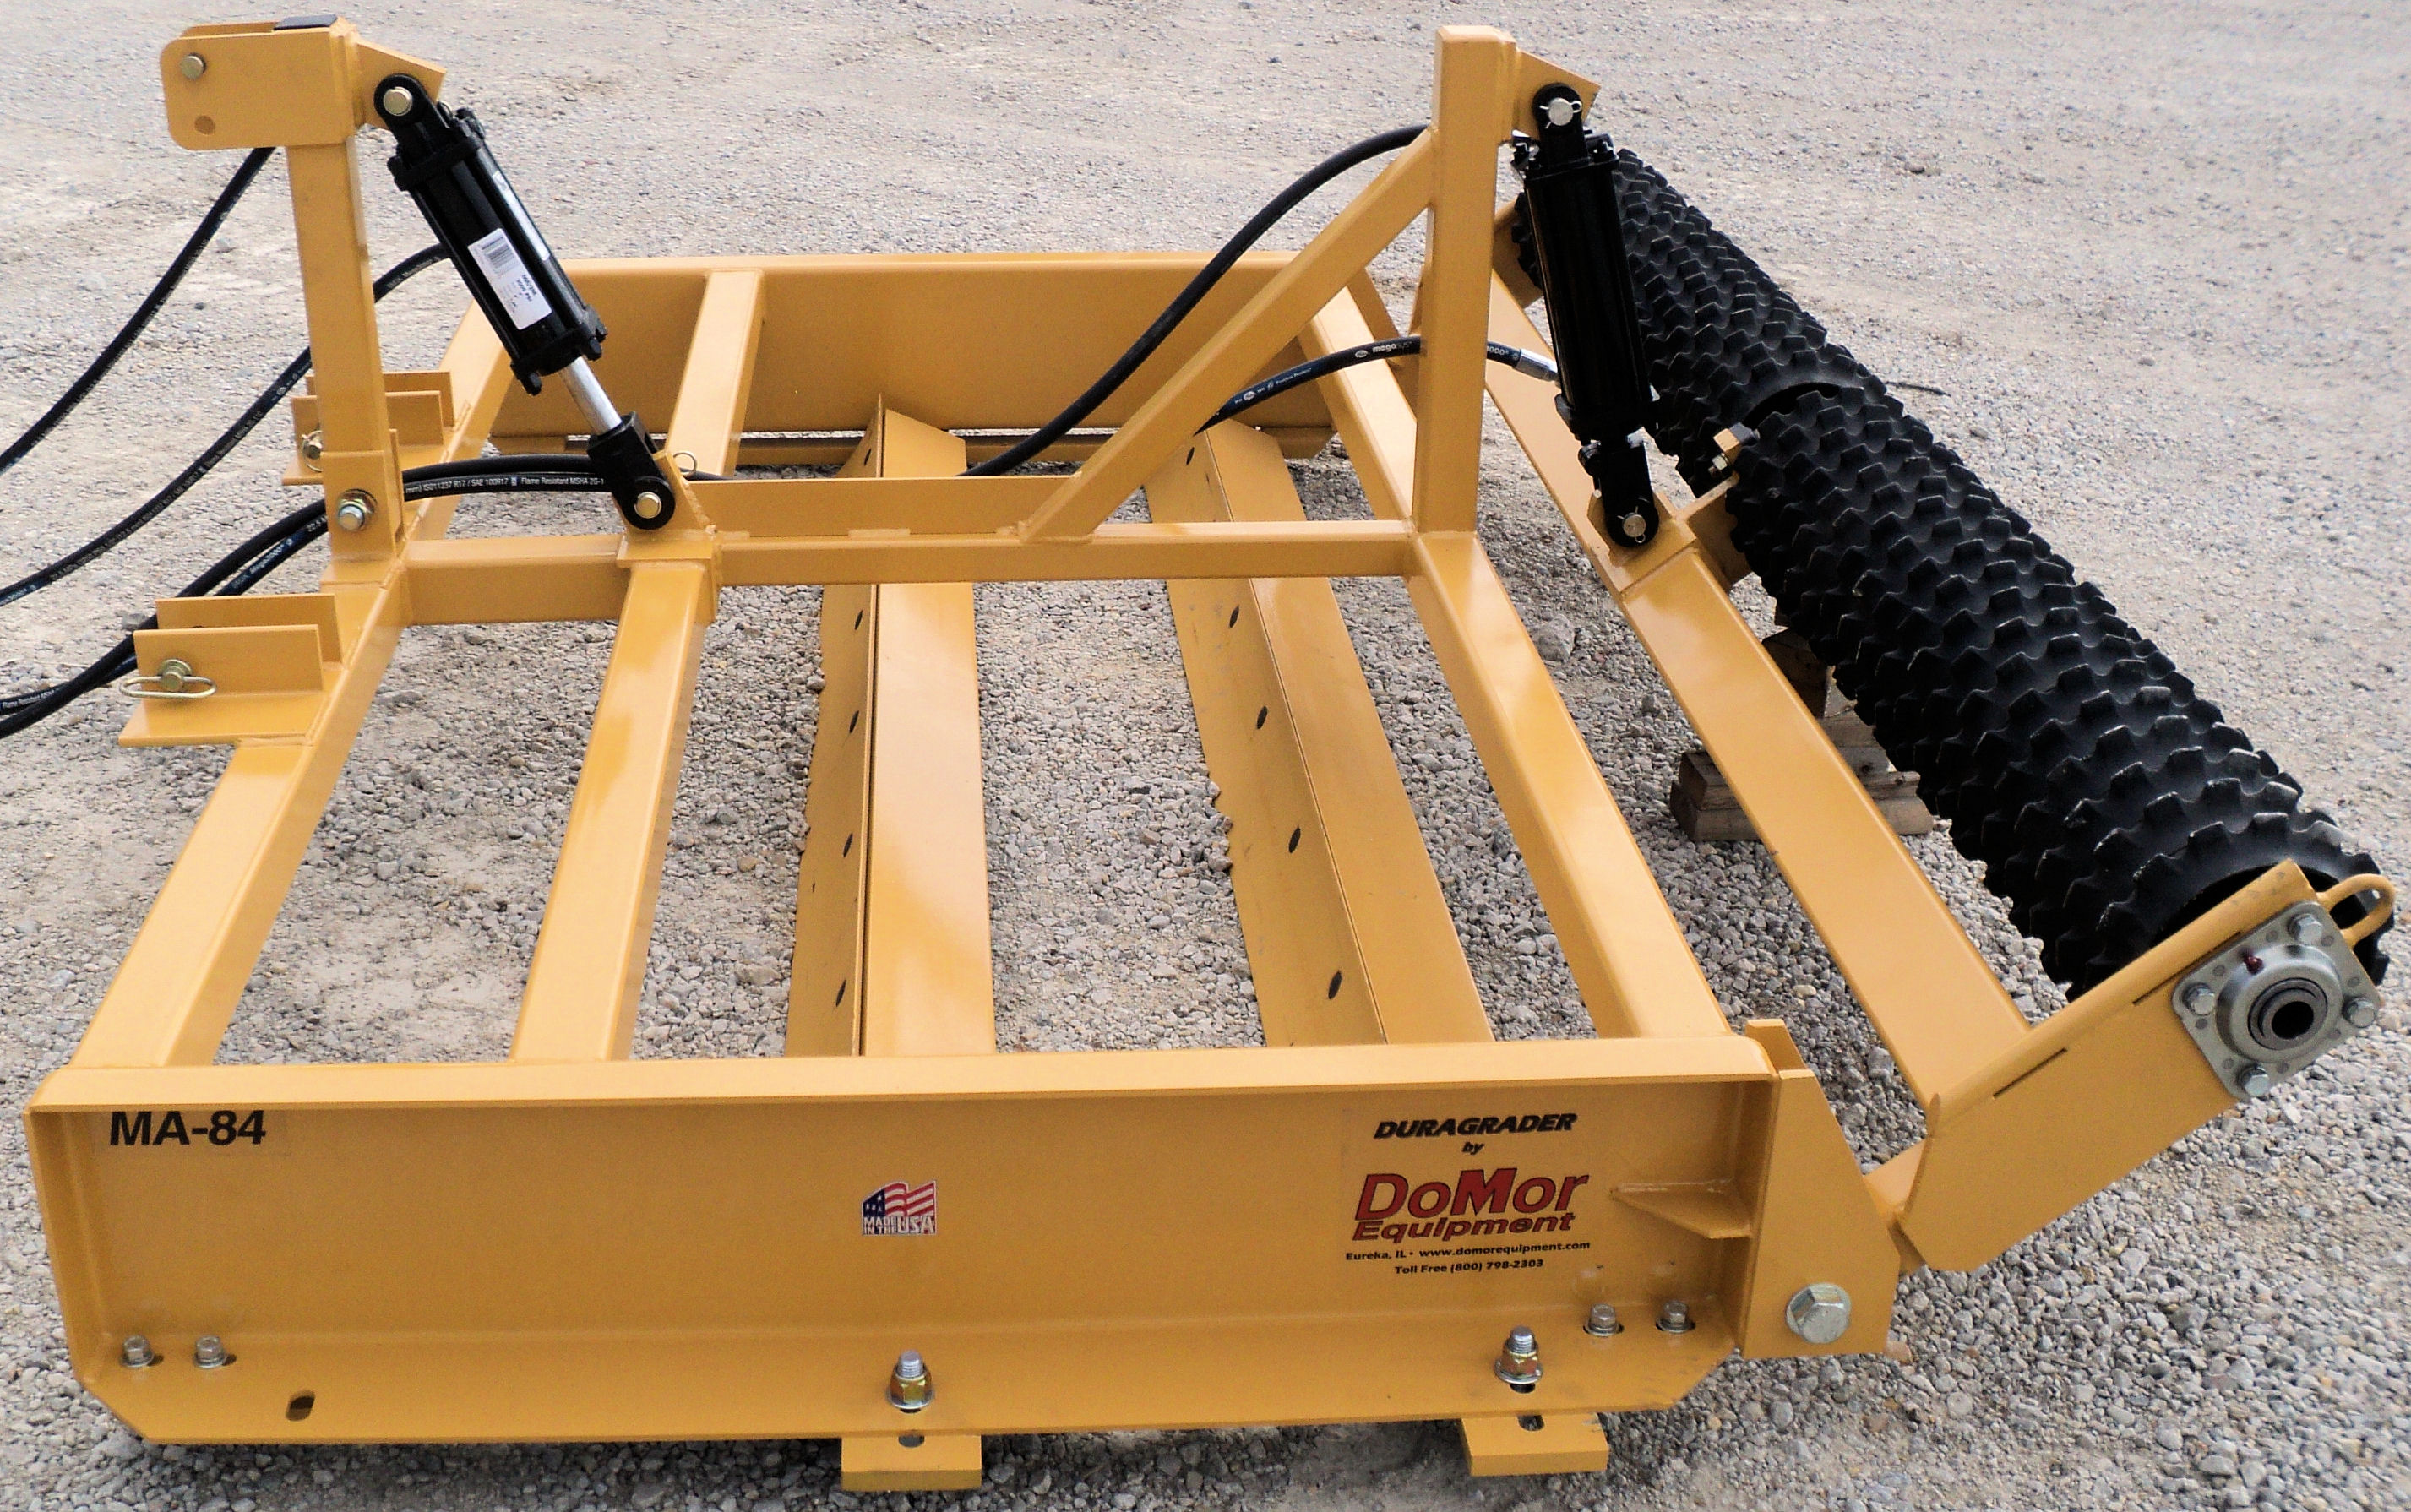 The Culti-Packer Add-on attachment works great for pulverizing and breaking up hard clumps and clods, and it can also be used to pack seeds to the proper depth for maximum seed growth for seed beds.